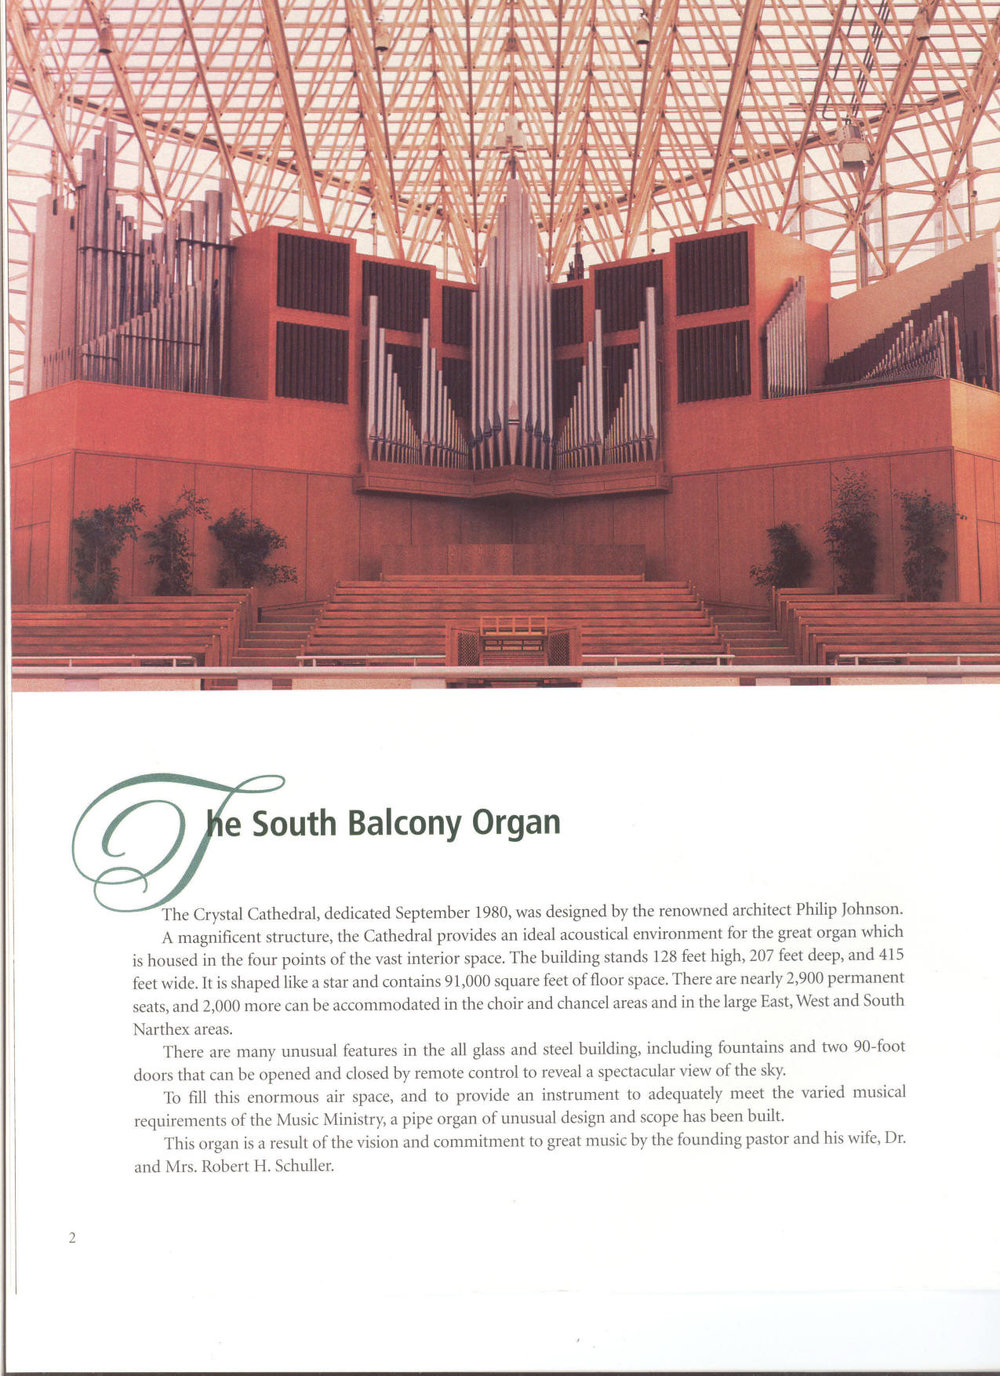 The Organs of the Crystal Cathedral_Page_02.jpg